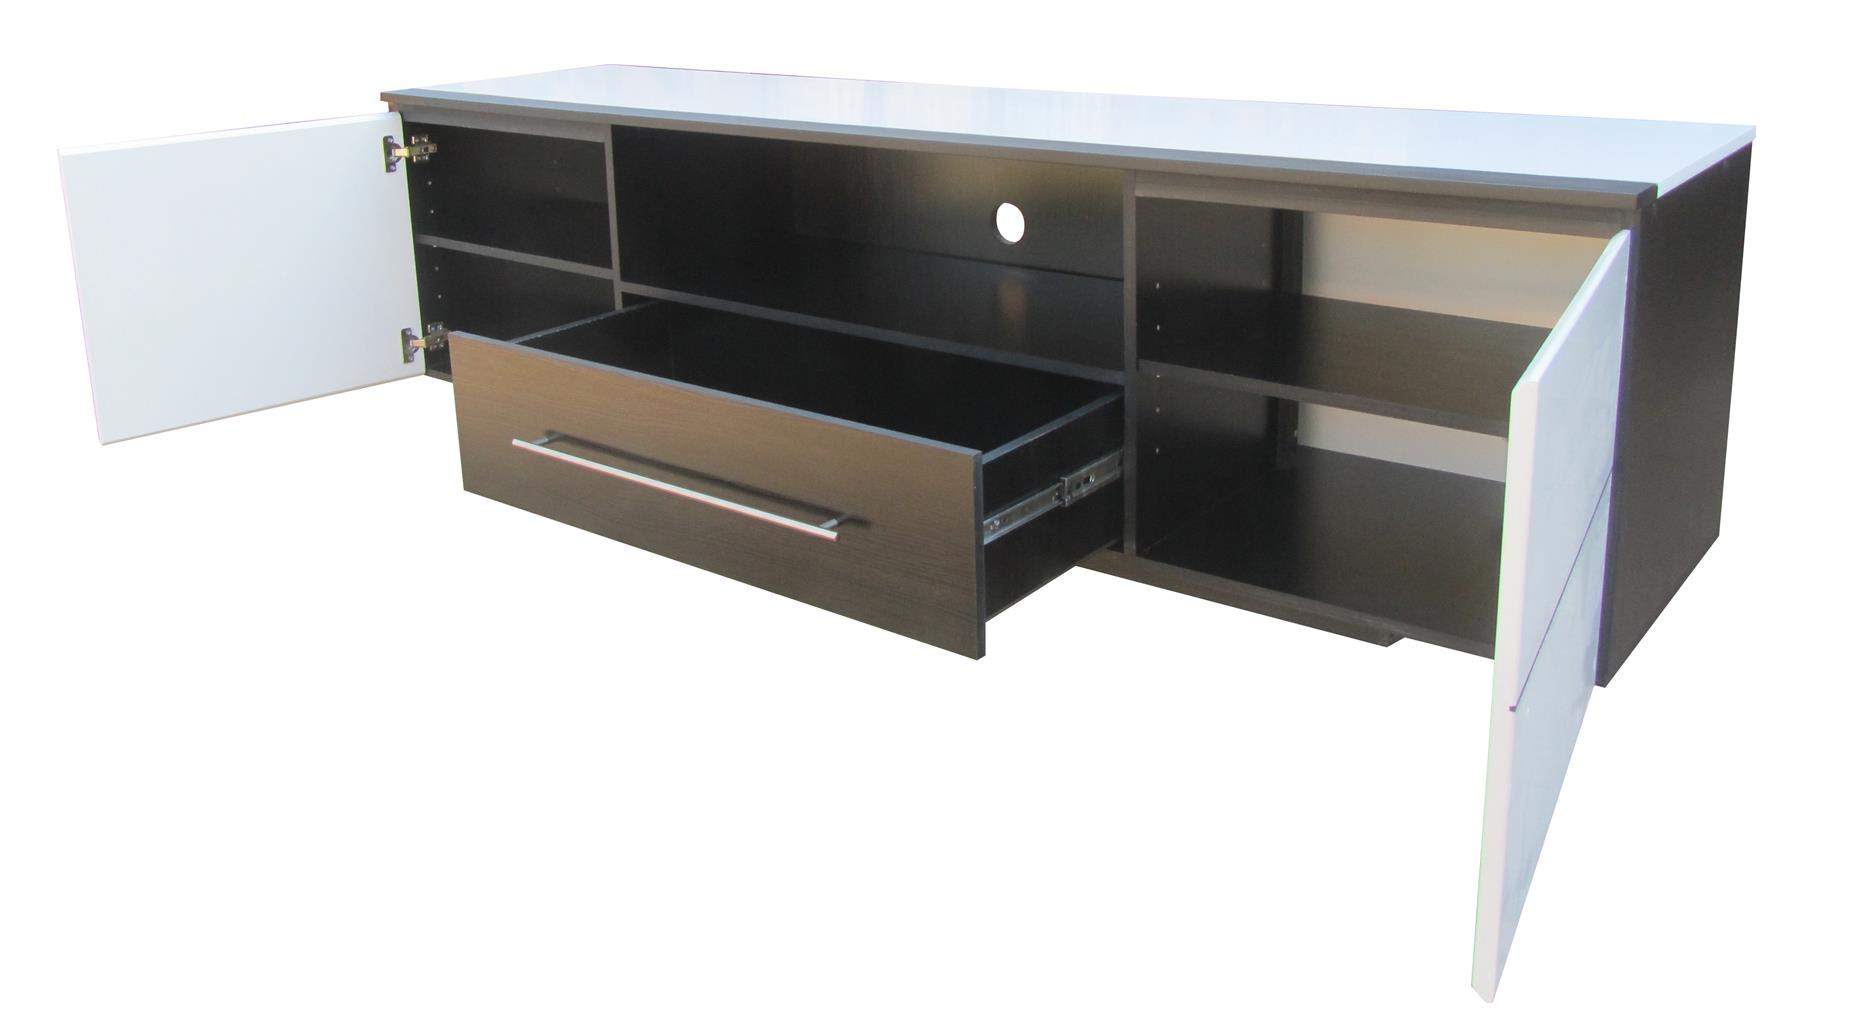 New modern Tv stand black & white high gloss finish 2 100 W x 600 D x 500 H. R 3 500